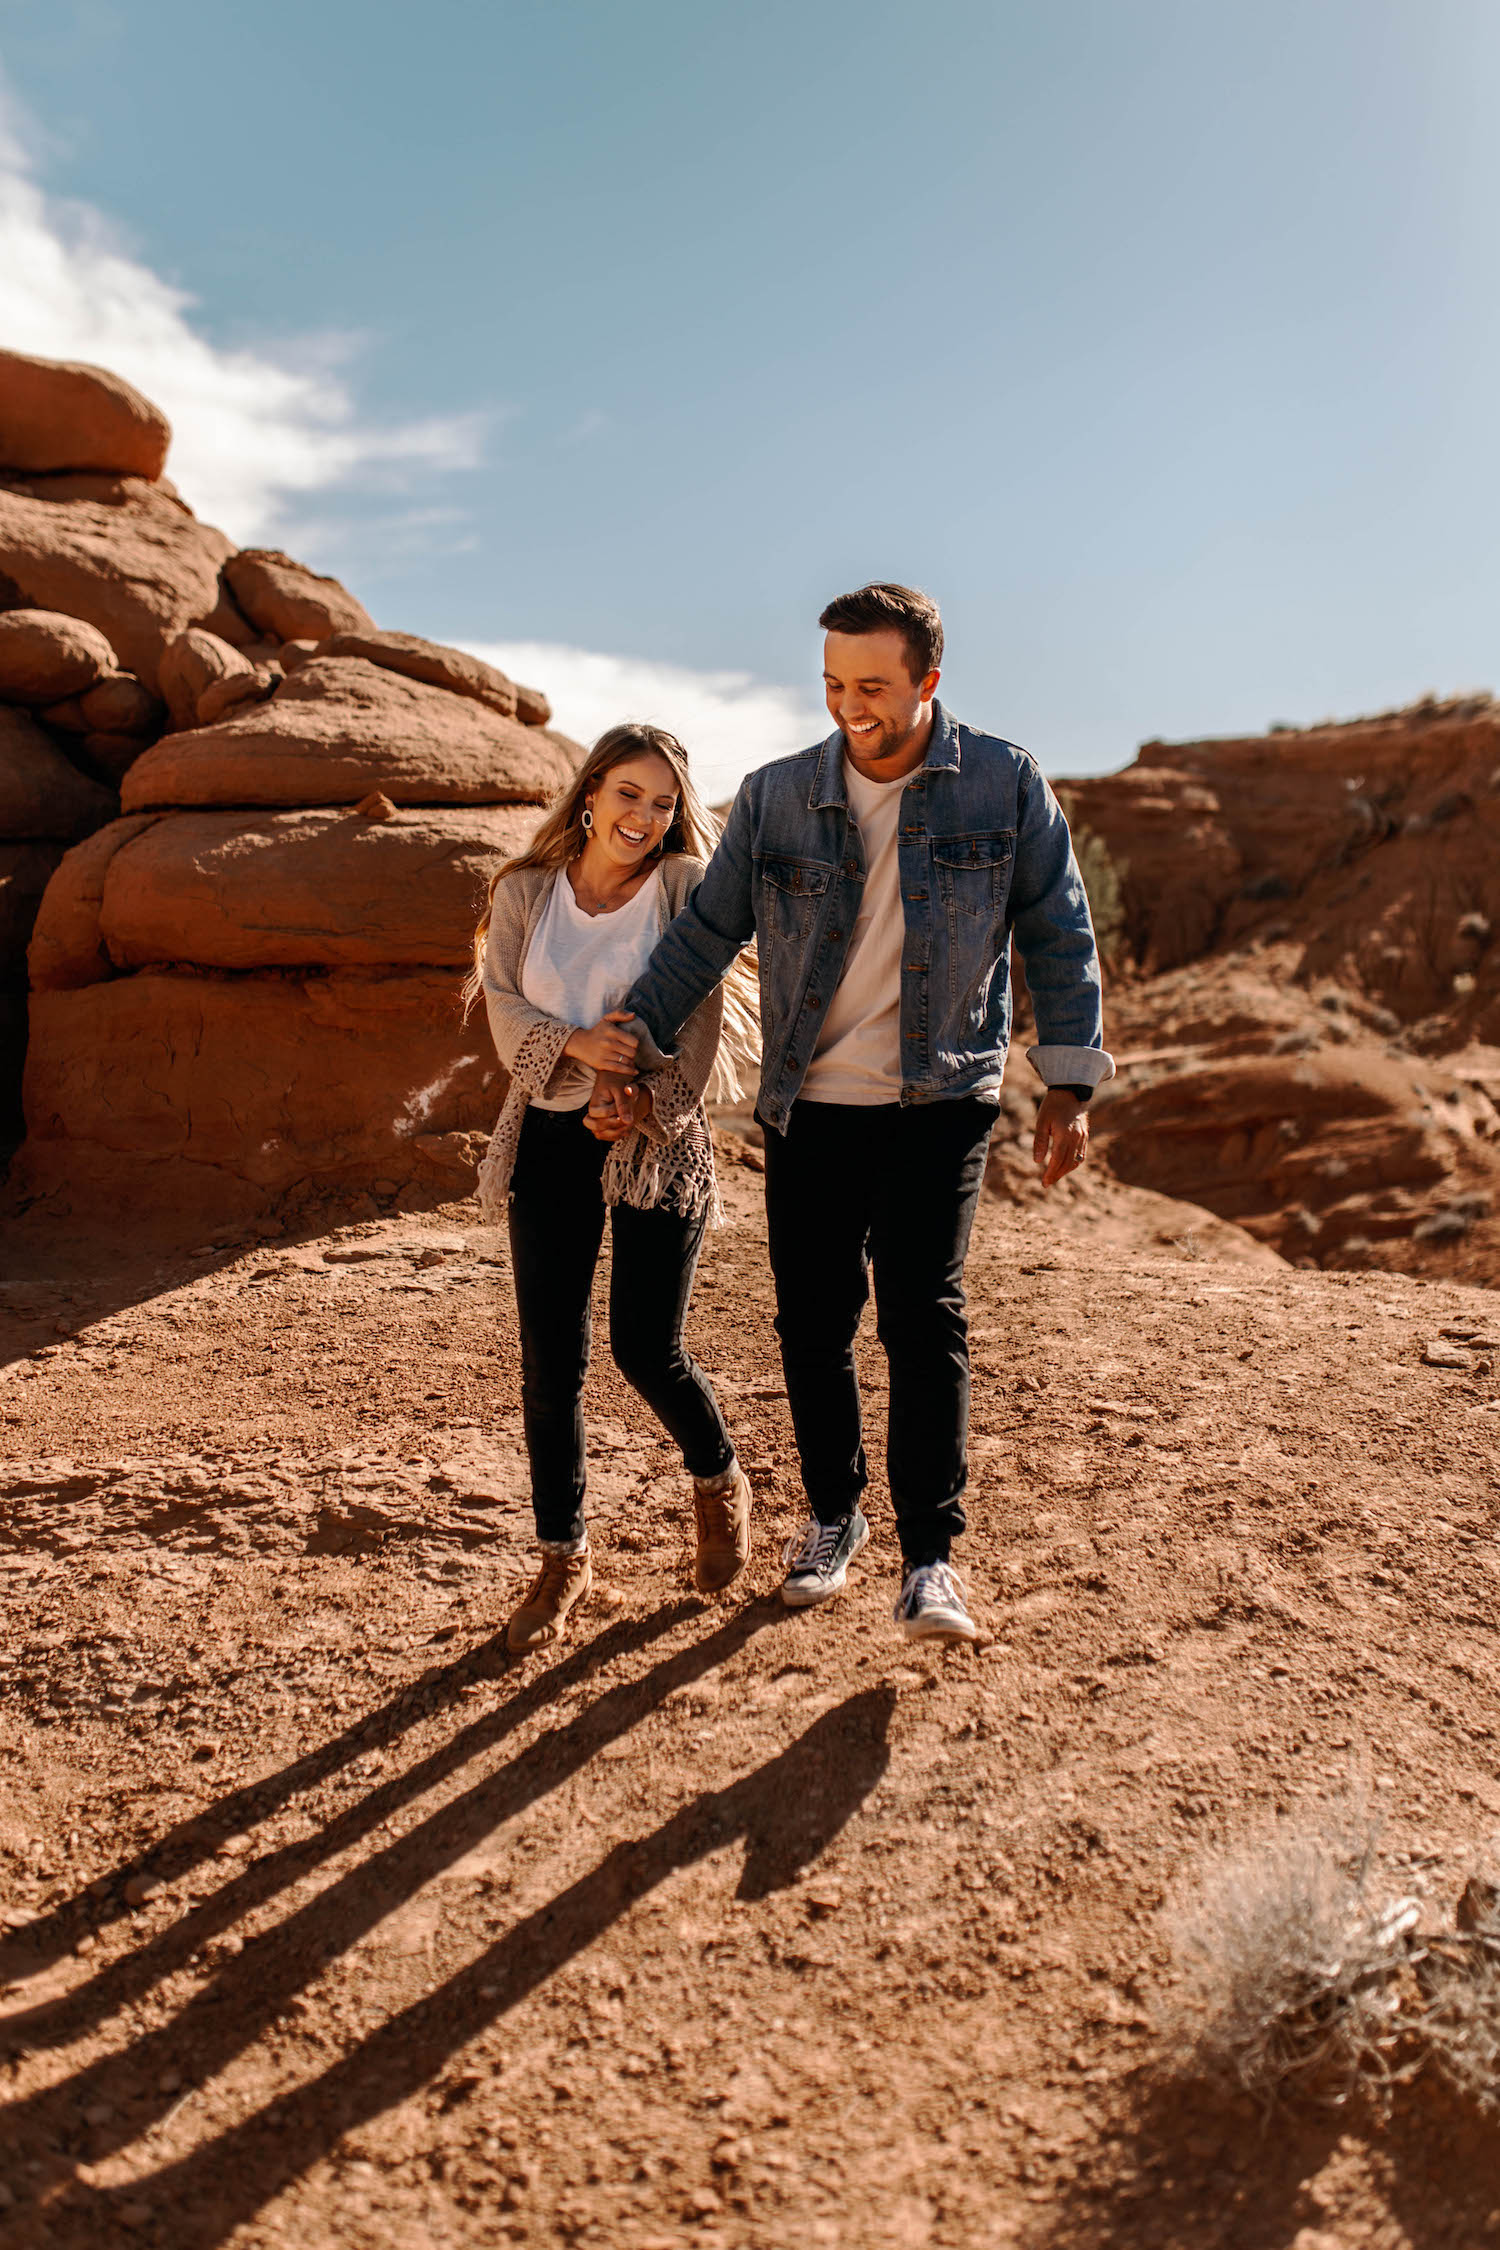 Bryce-Canyon-National-Park-Adventure-Couple-Session-4.jpg